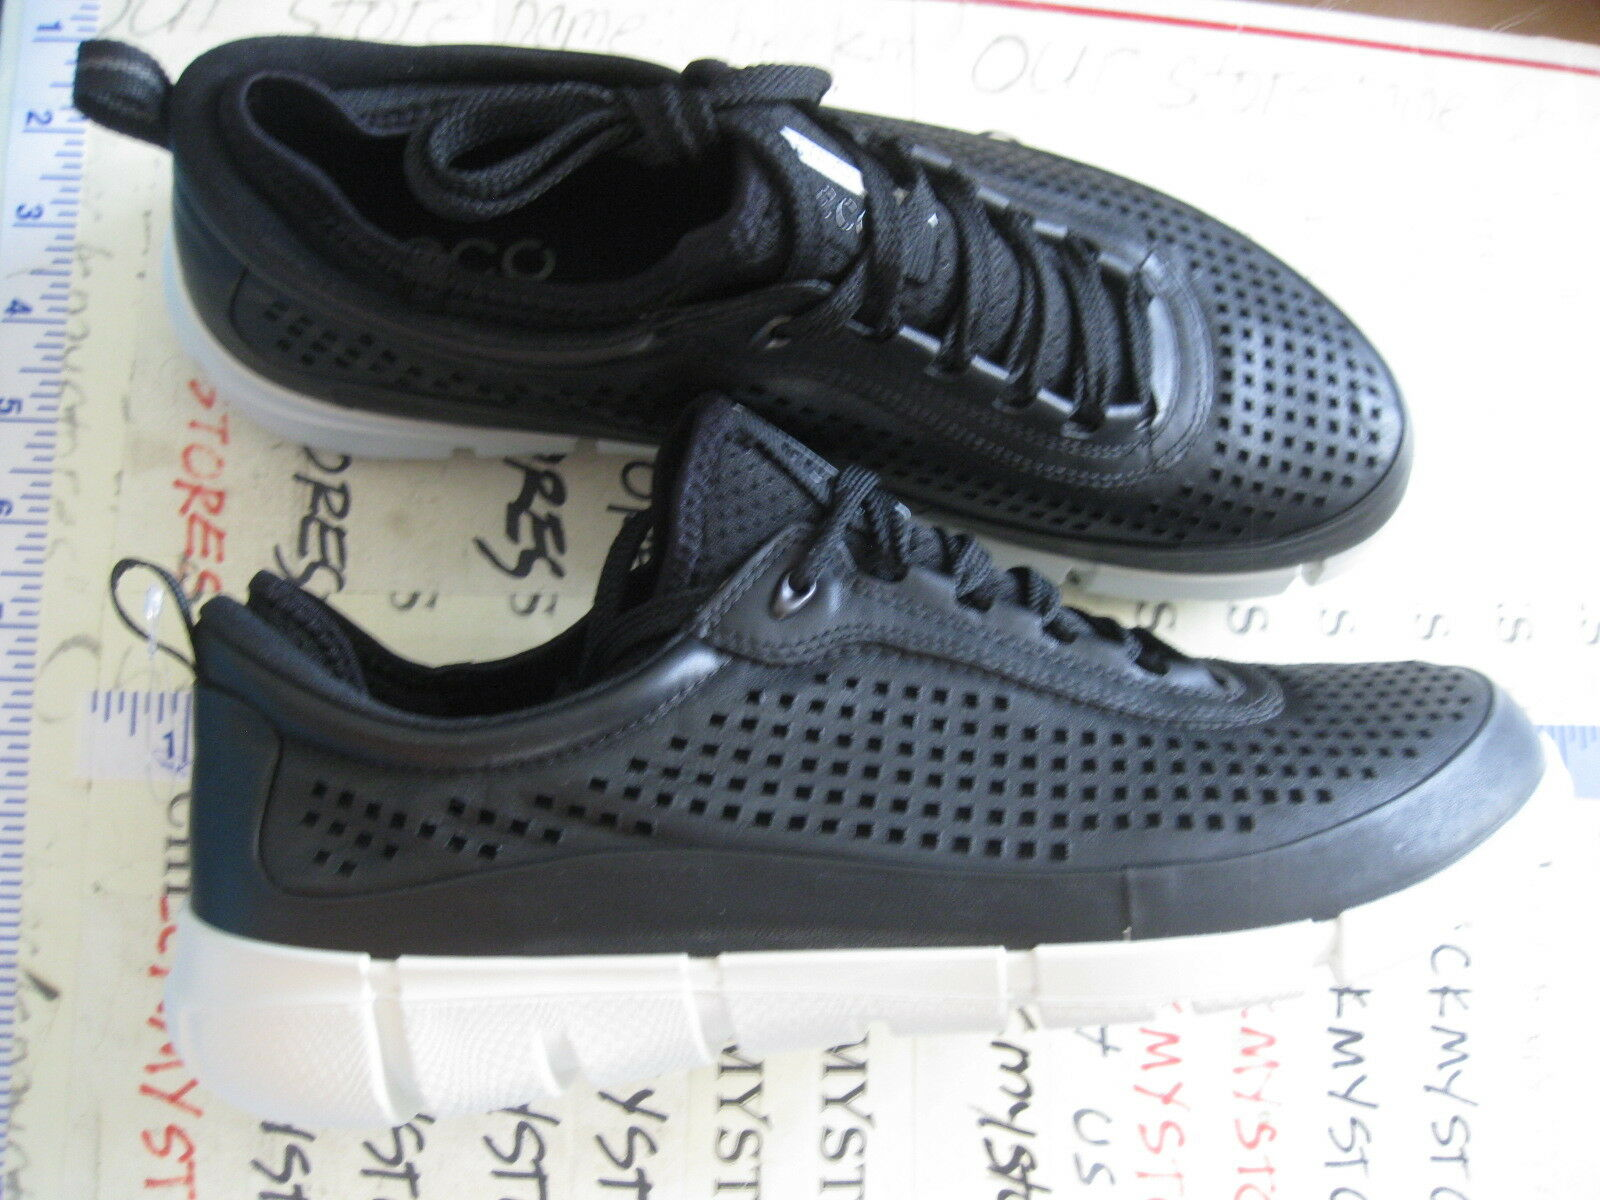 32d91330 Men's 235124 ECCO Intrinsic Black Leather Walking Fashion SNEAKERS Sz. 45